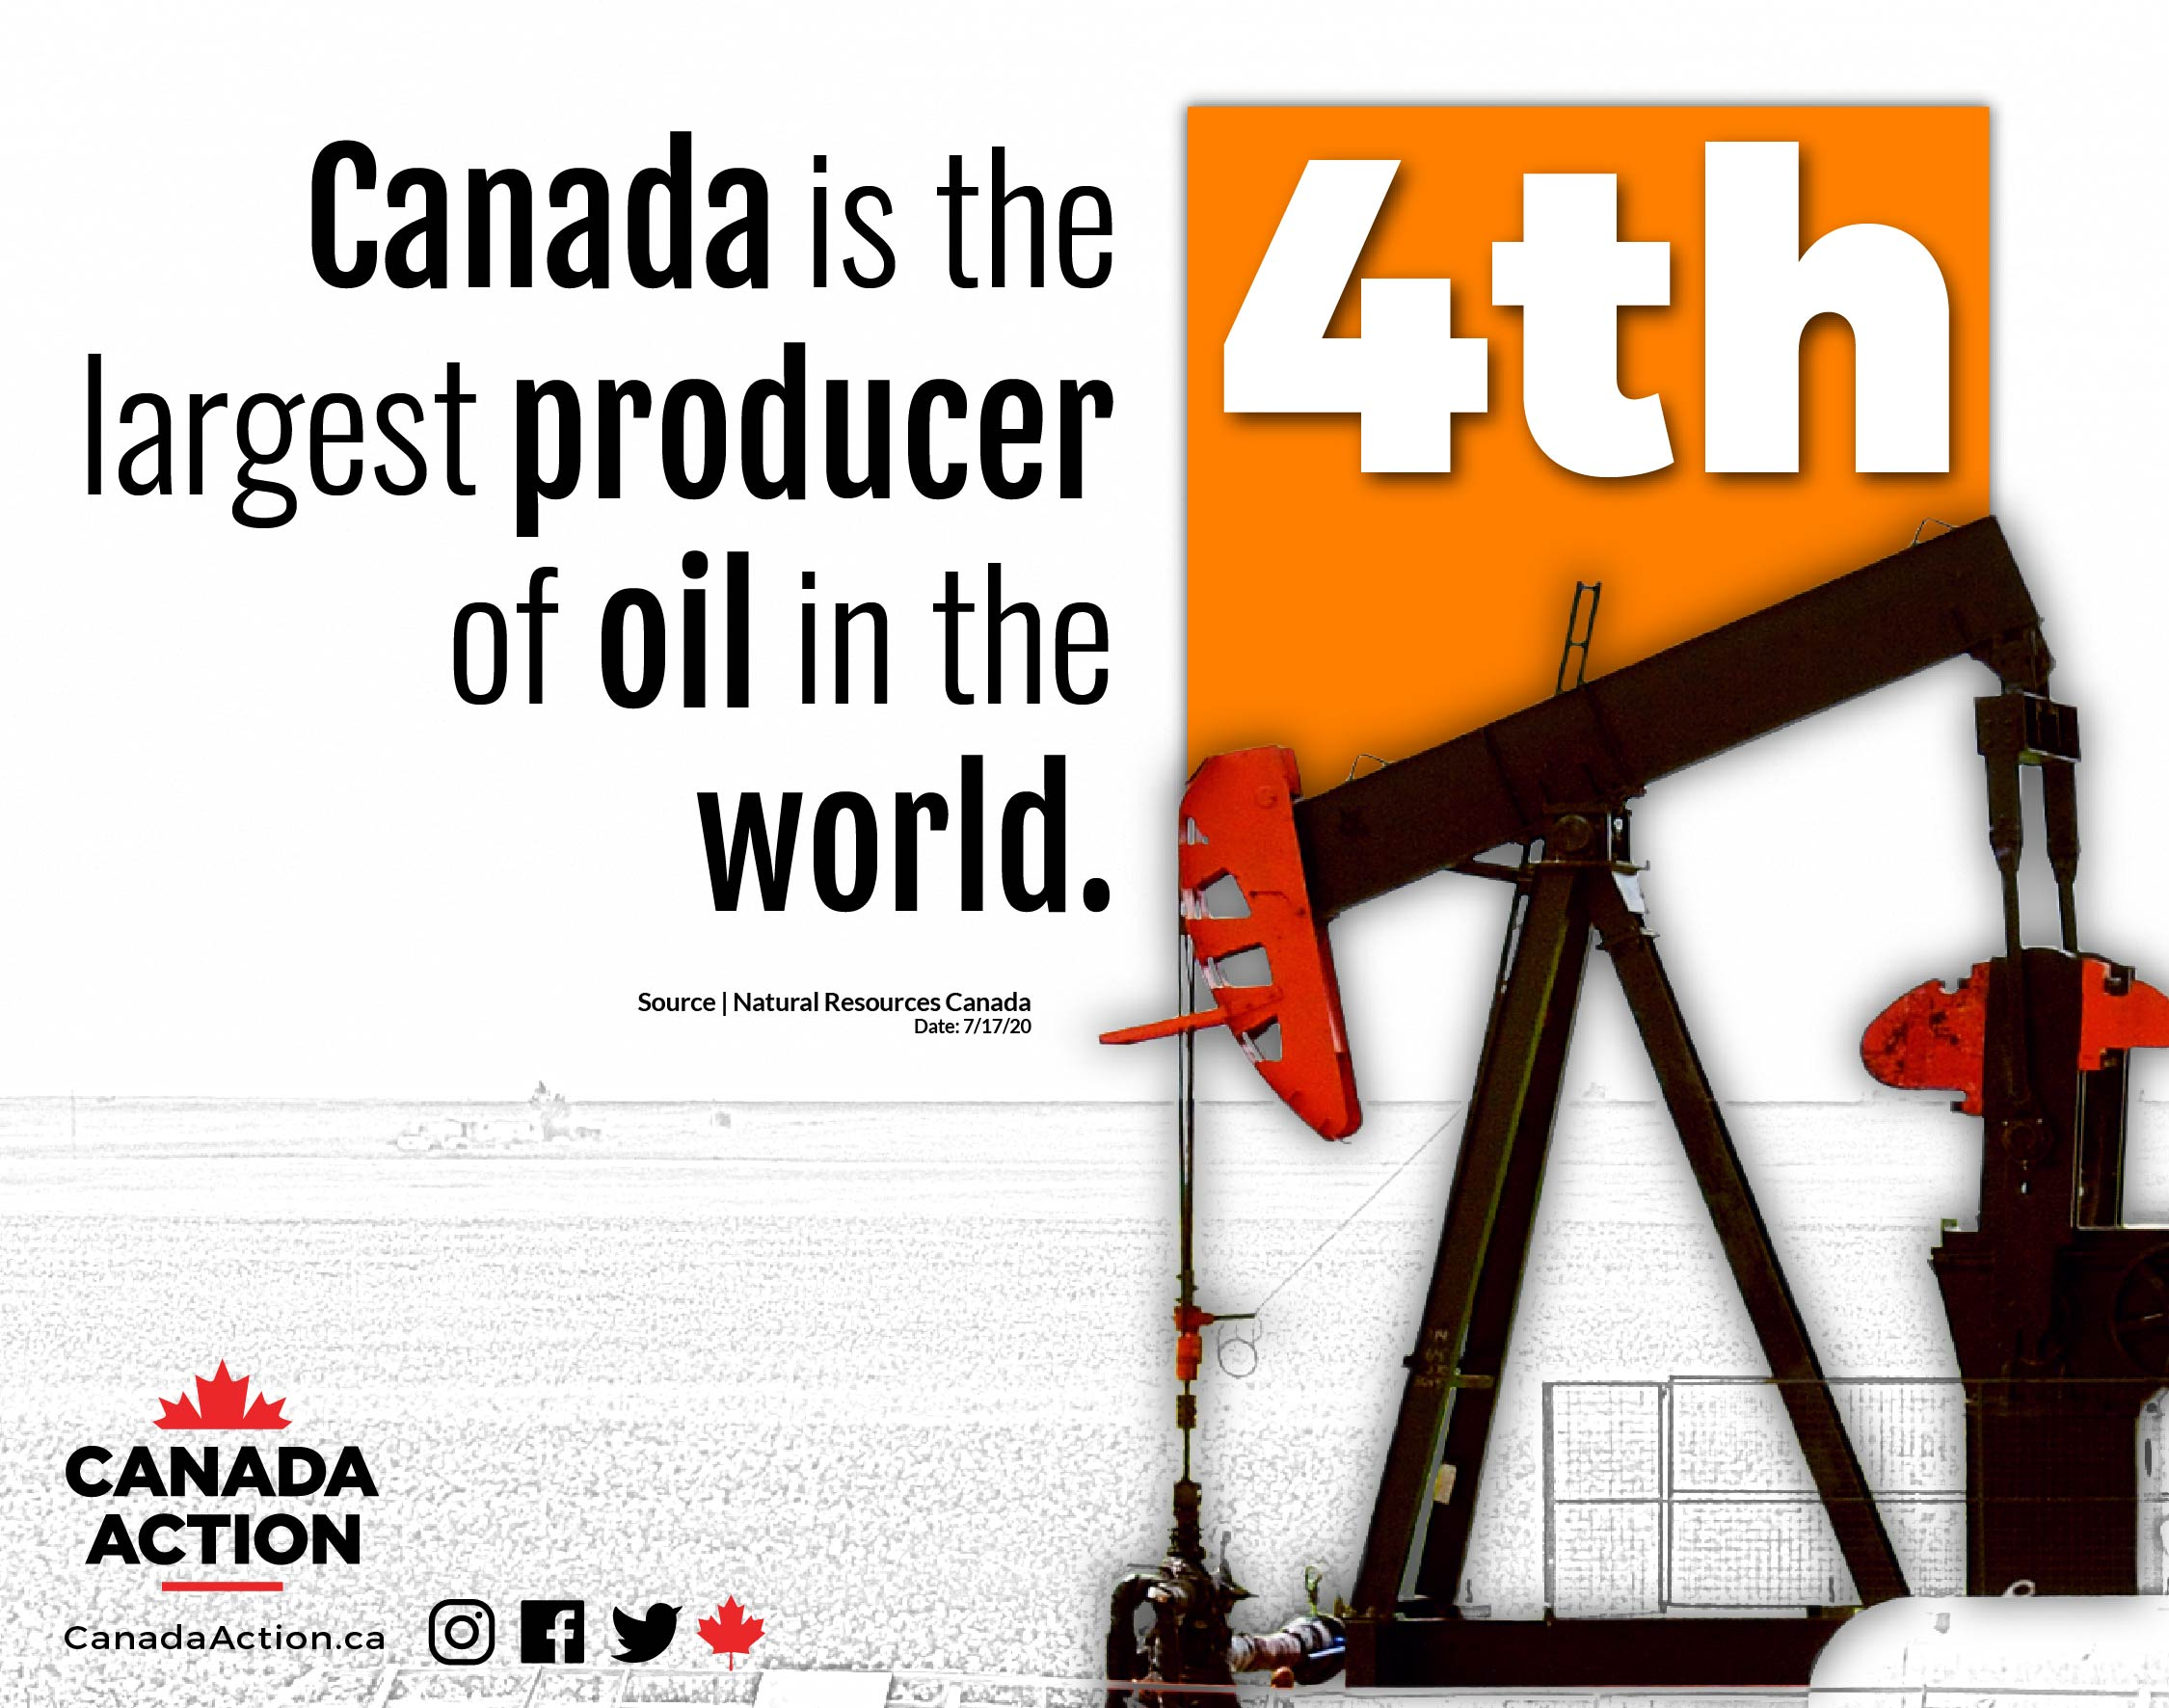 Canada is the 4th largest producer of oil in the world